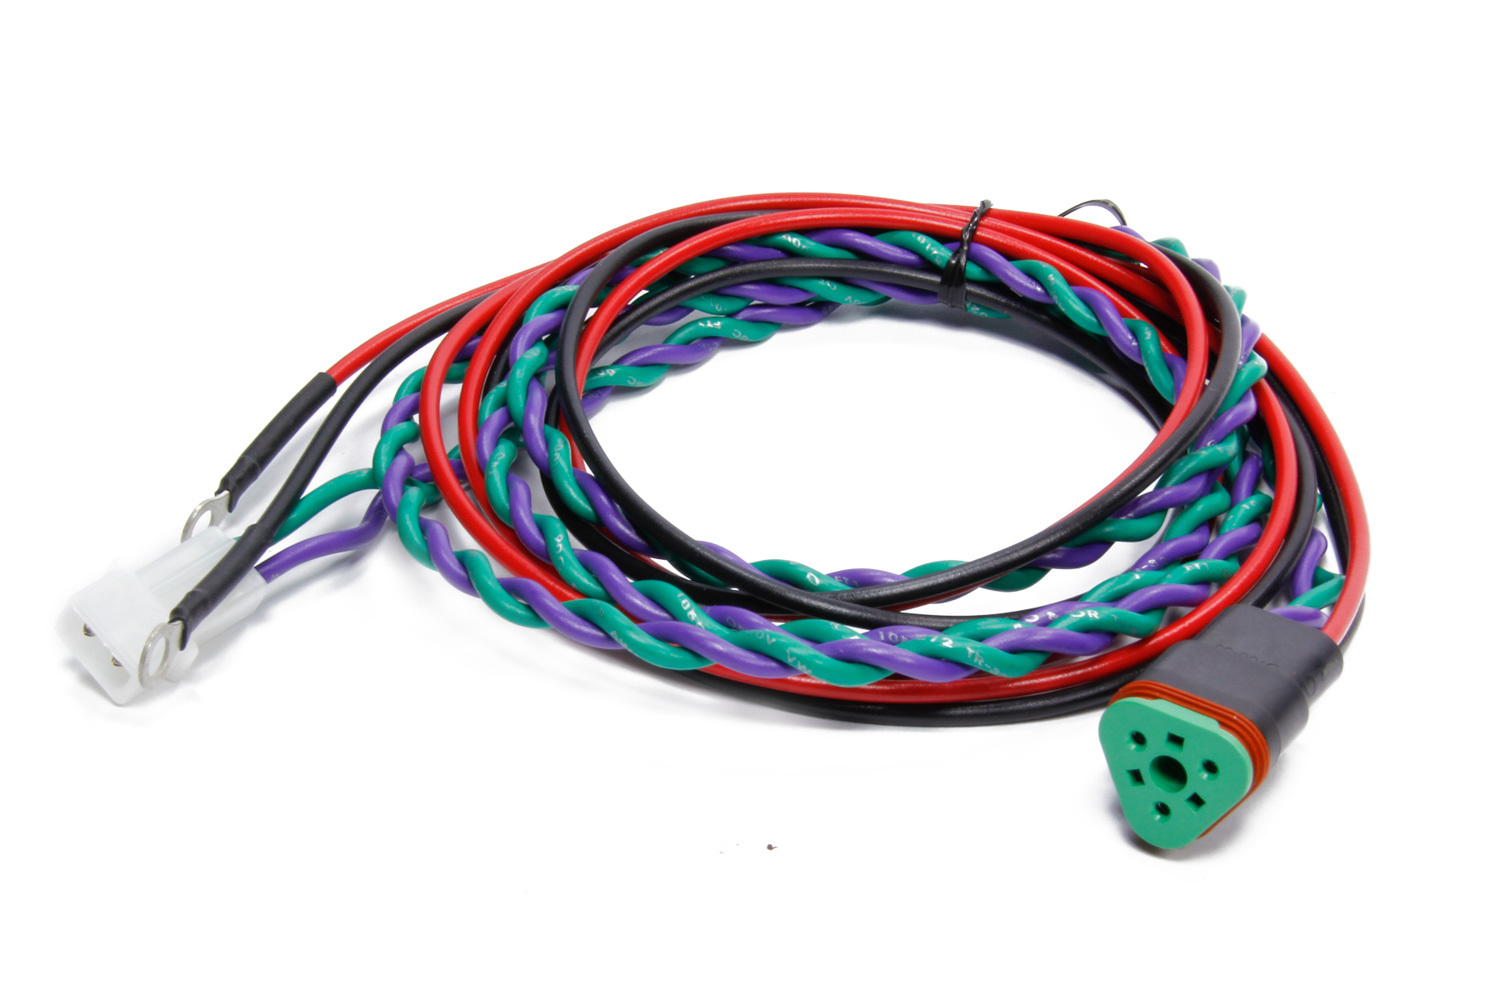 [SCHEMATICS_48IU]  Fast Electronics 6000-6719 Ignition Wiring Harness, 48 in Lo | Fast Wiring Harness |  | Dan Hellmer Racing Solutions